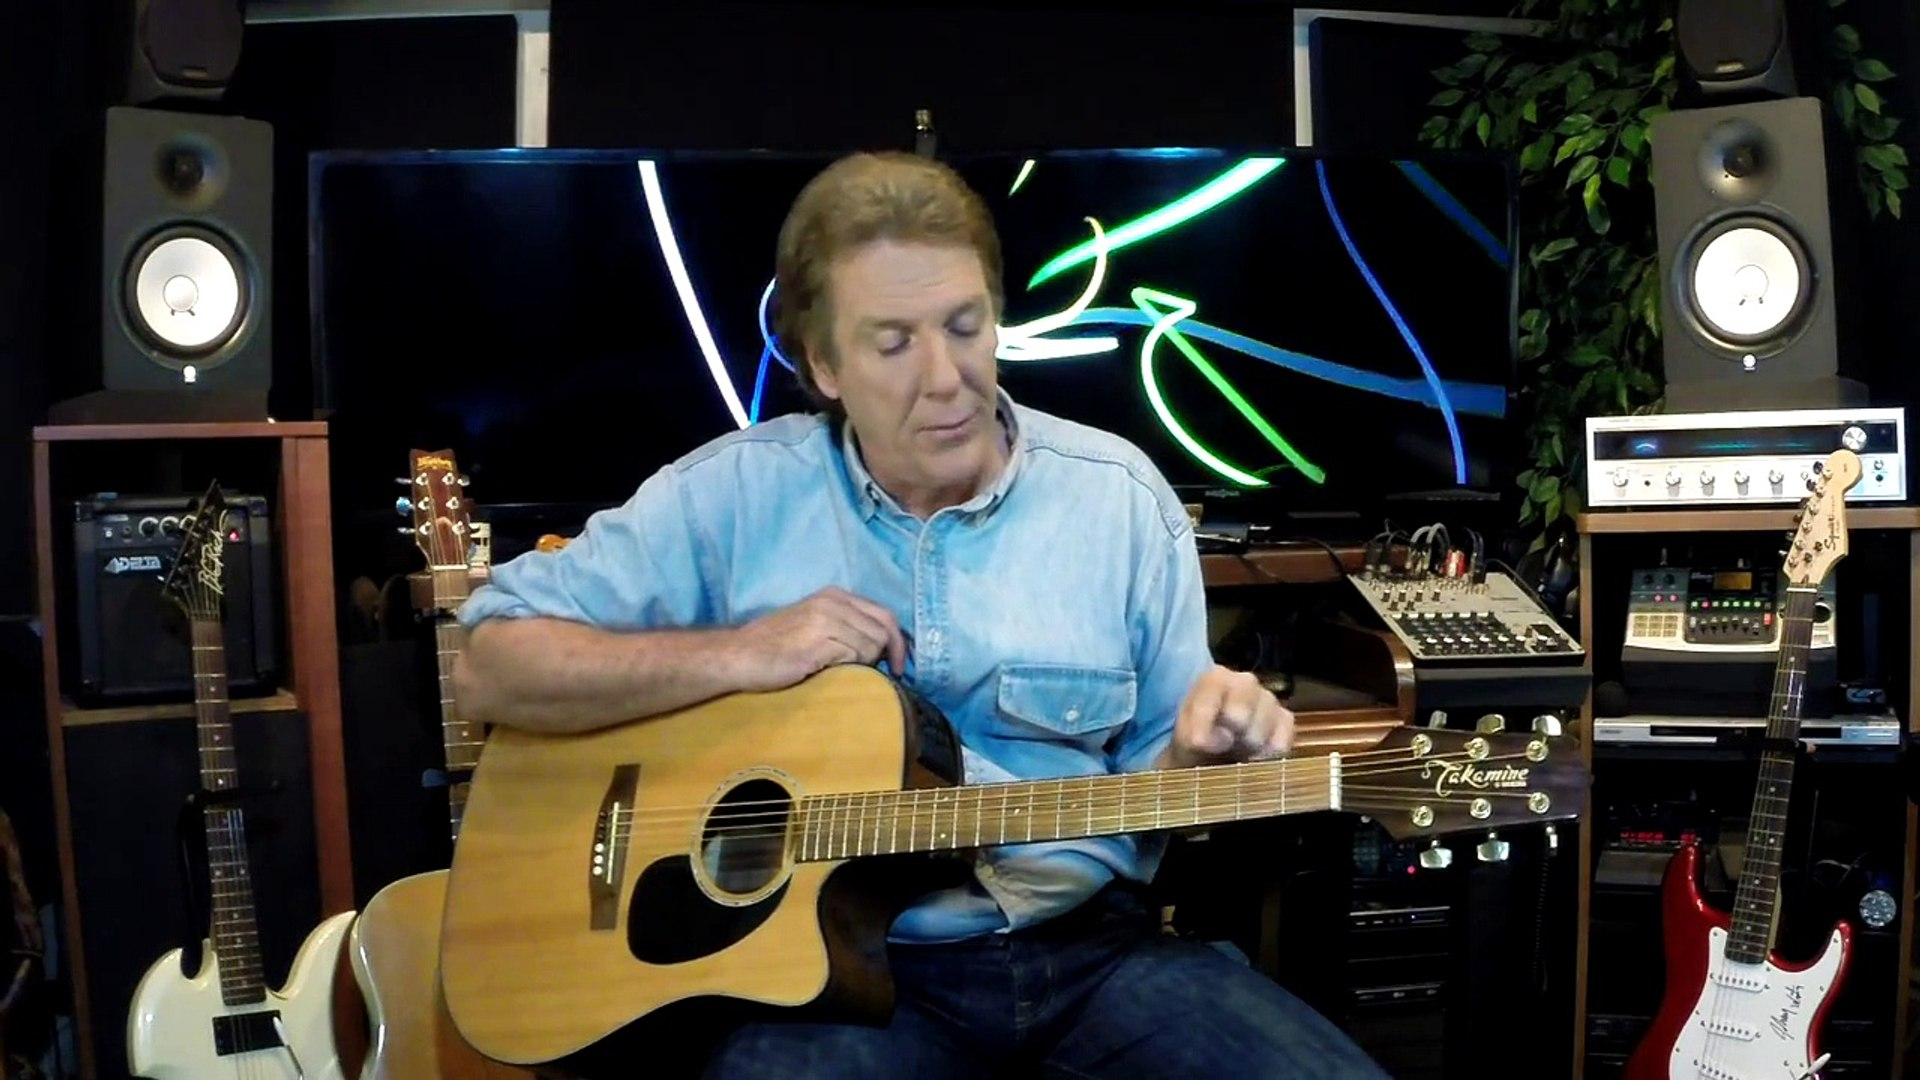 How to Play Guitar for Beginners, Geoff Warren guitar lessons, Learn to Play Guitar